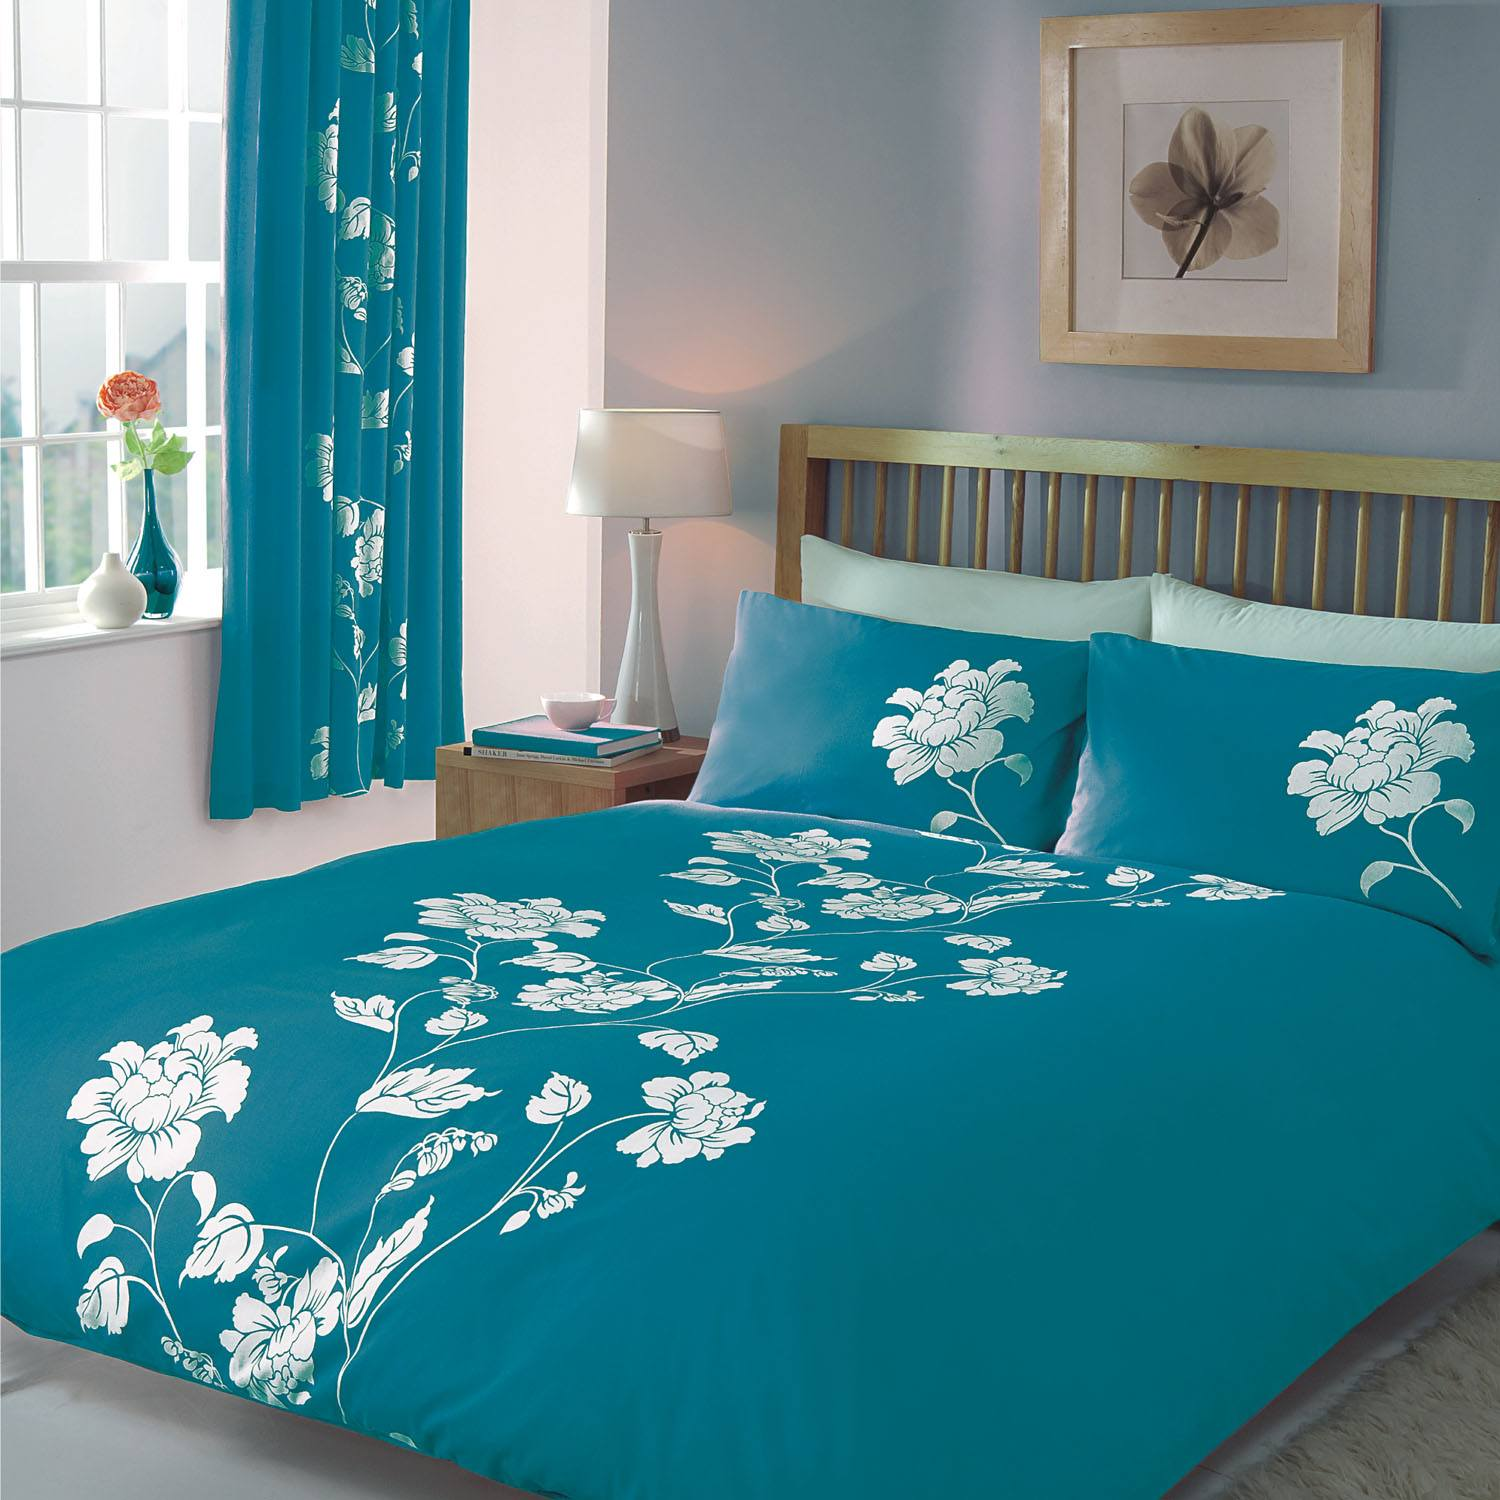 Azure colored bedroom linen with same pattern on the curtains